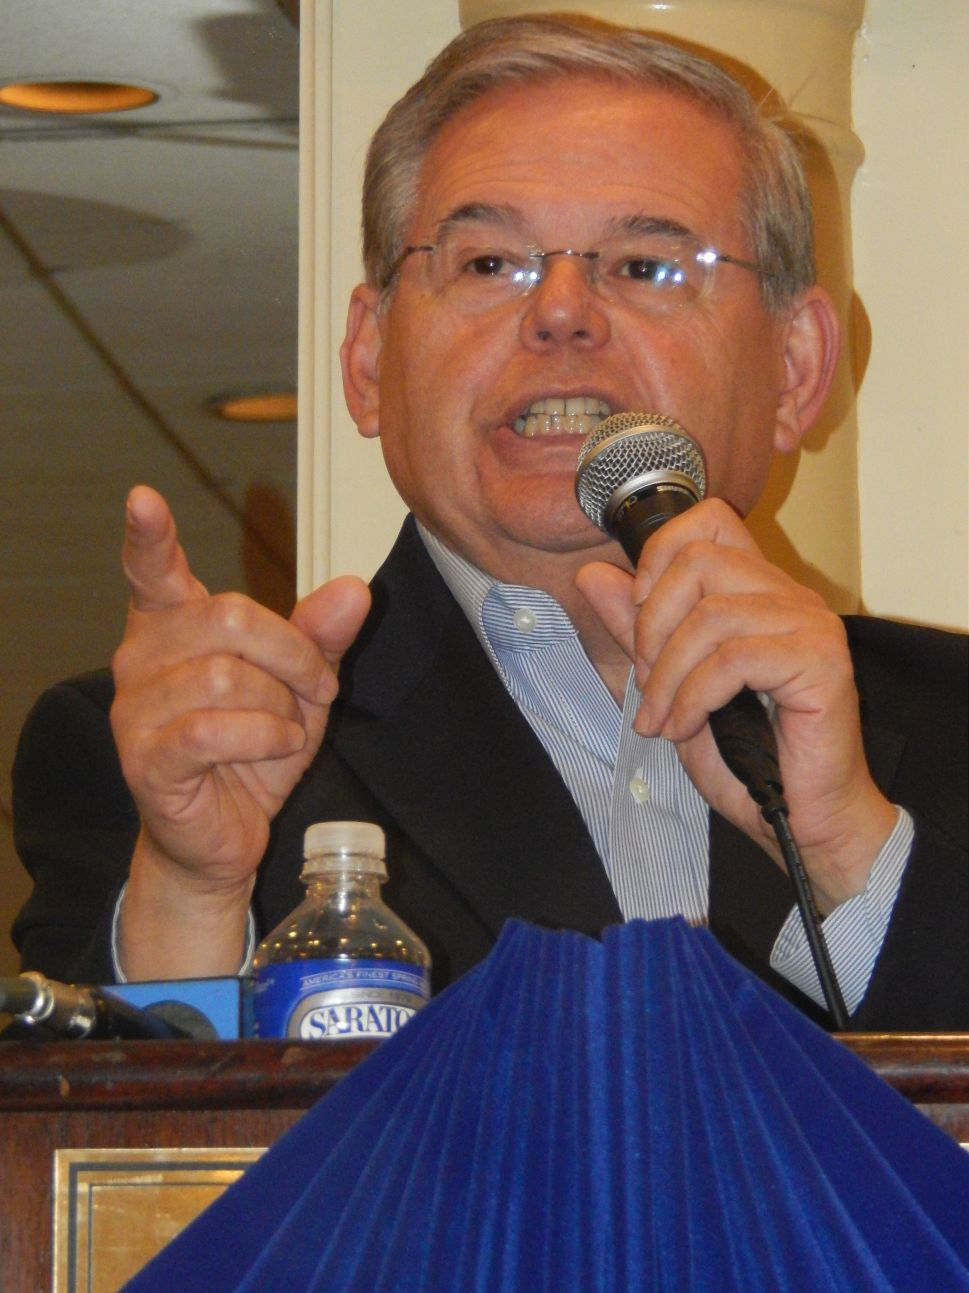 Menendez lashes out at Boehner's 'obstructionism' on immigration bill